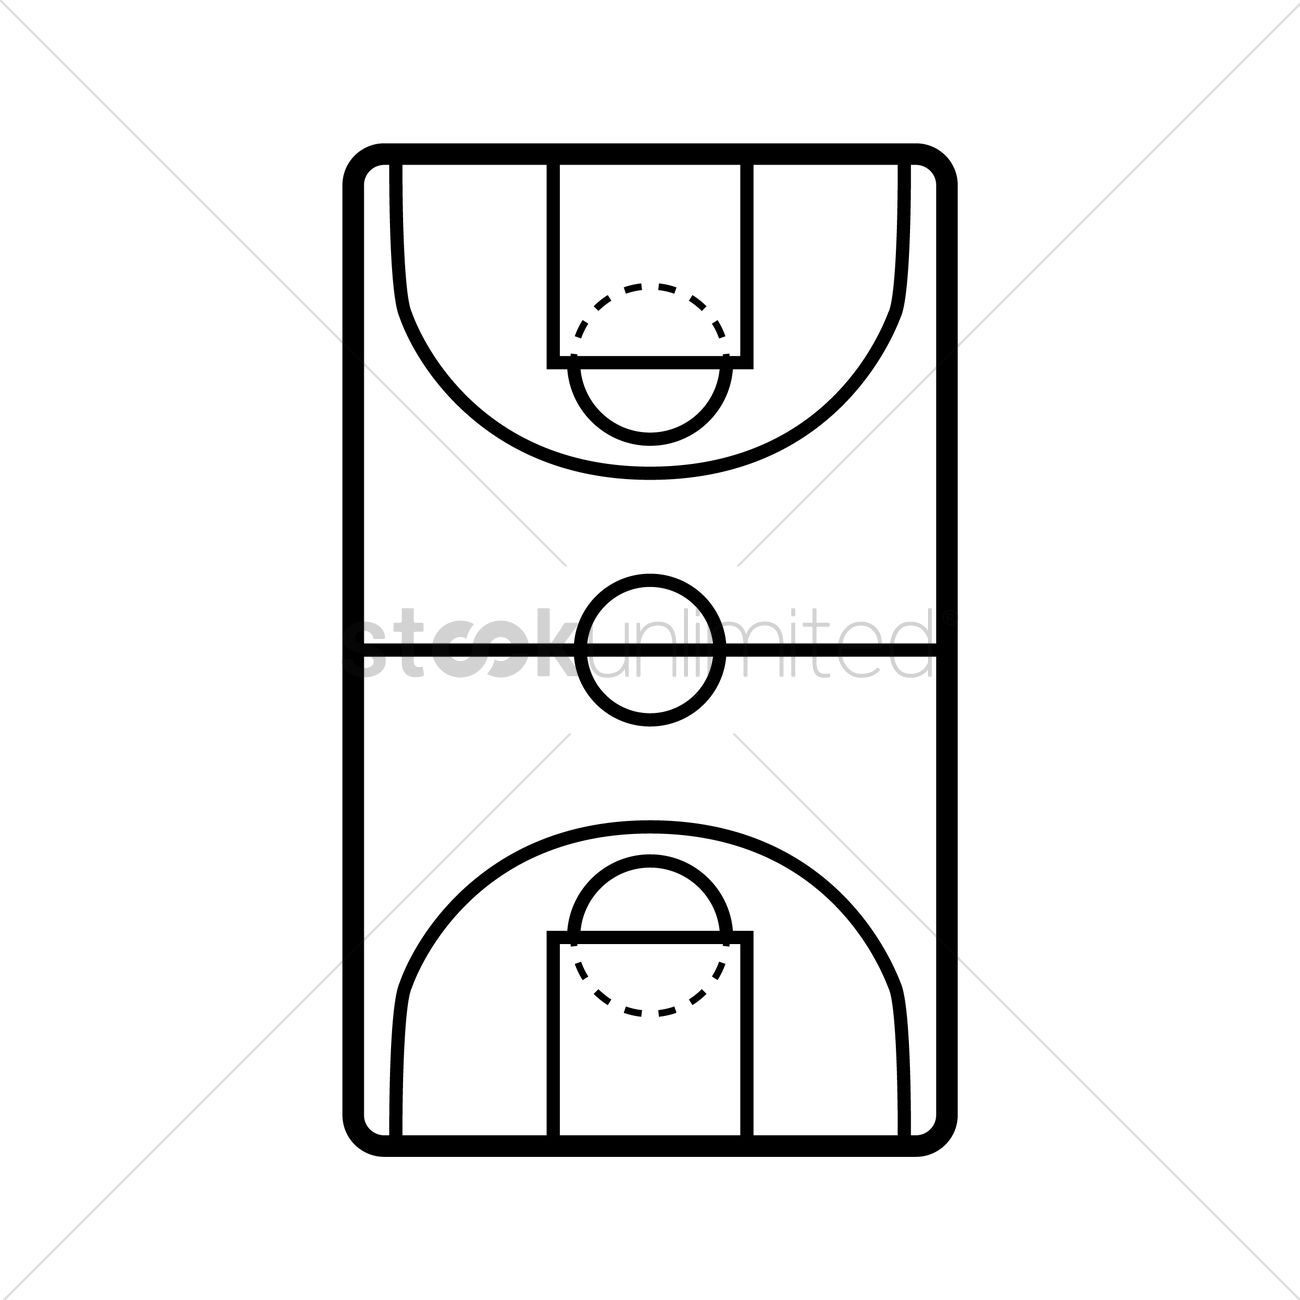 Drawing at getdrawings com. Basketball clipart basketball court